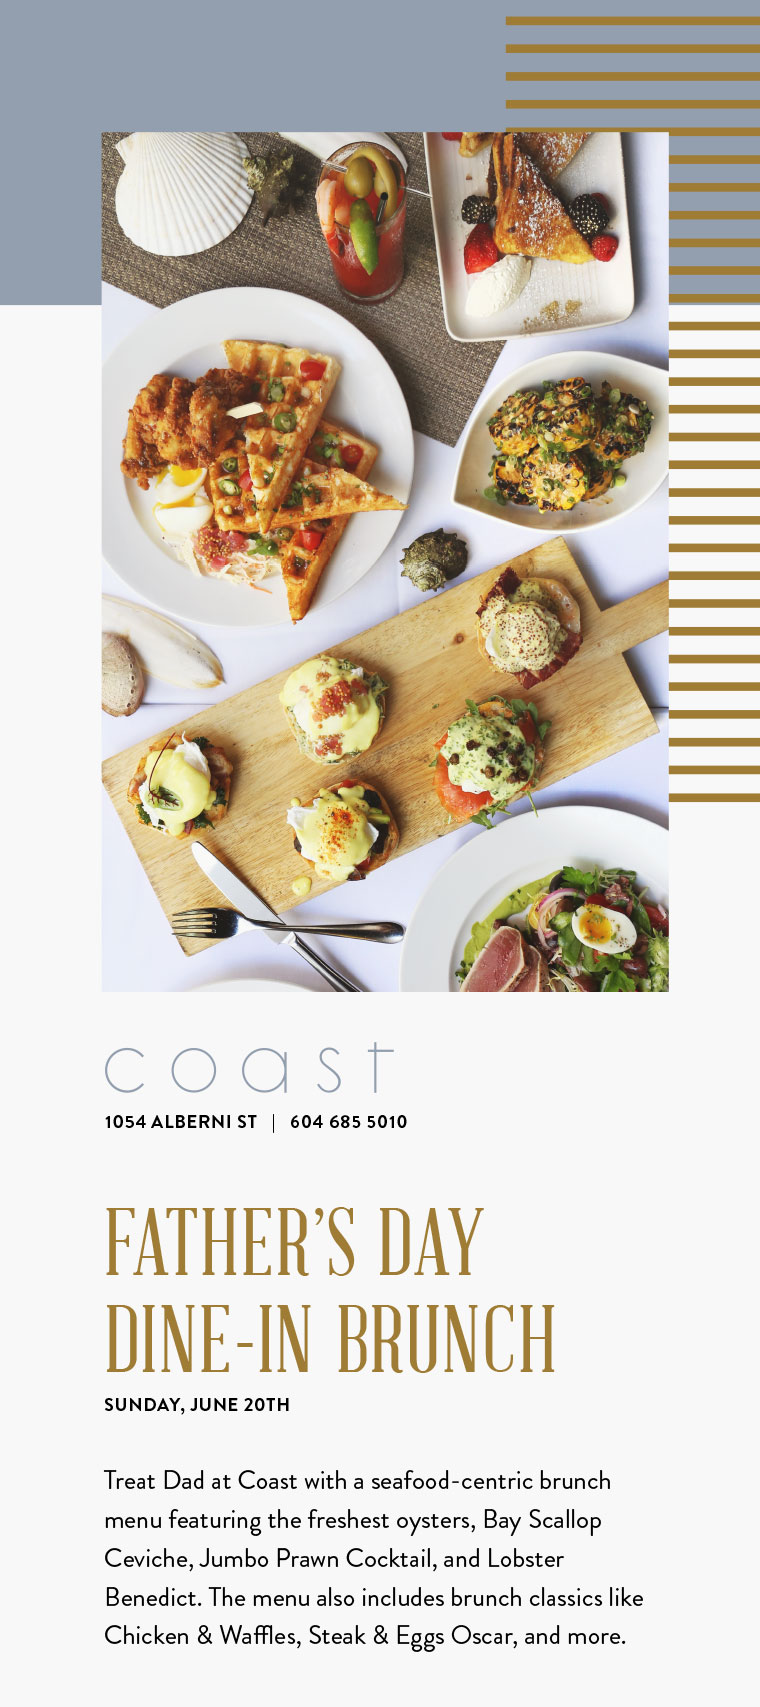 FATHER'S DAY DINE-IN BRUNCH SUNDAY, JUNE 20TH  Treat Dad at Coast with a seafood-centric brunch menu featuring the freshest oysters, Bay Scallop Ceviche, Jumbo Prawn Cocktail, and Lobster Benedict. The menu also includes brunch classics like Chicken & Waffles, Steak & Eggs Oscar, and more.